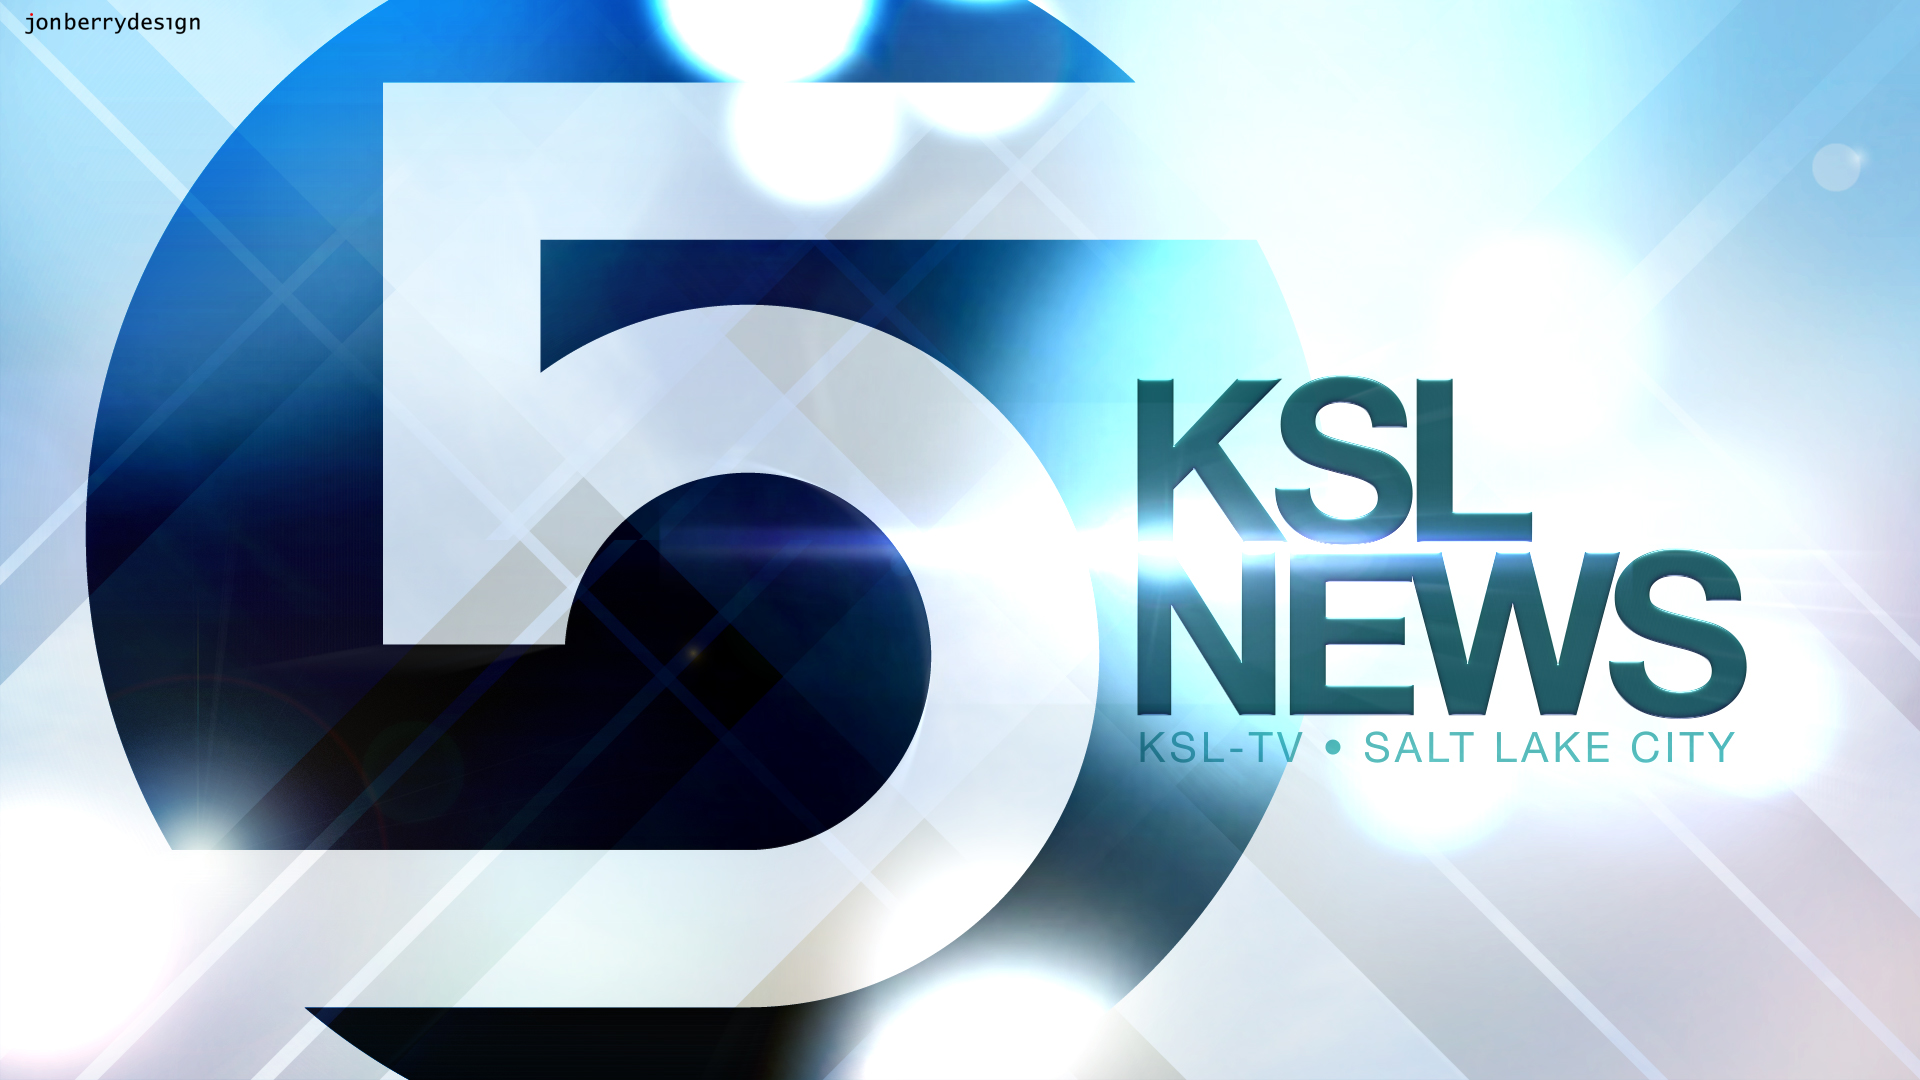 news open design | KSL-TV